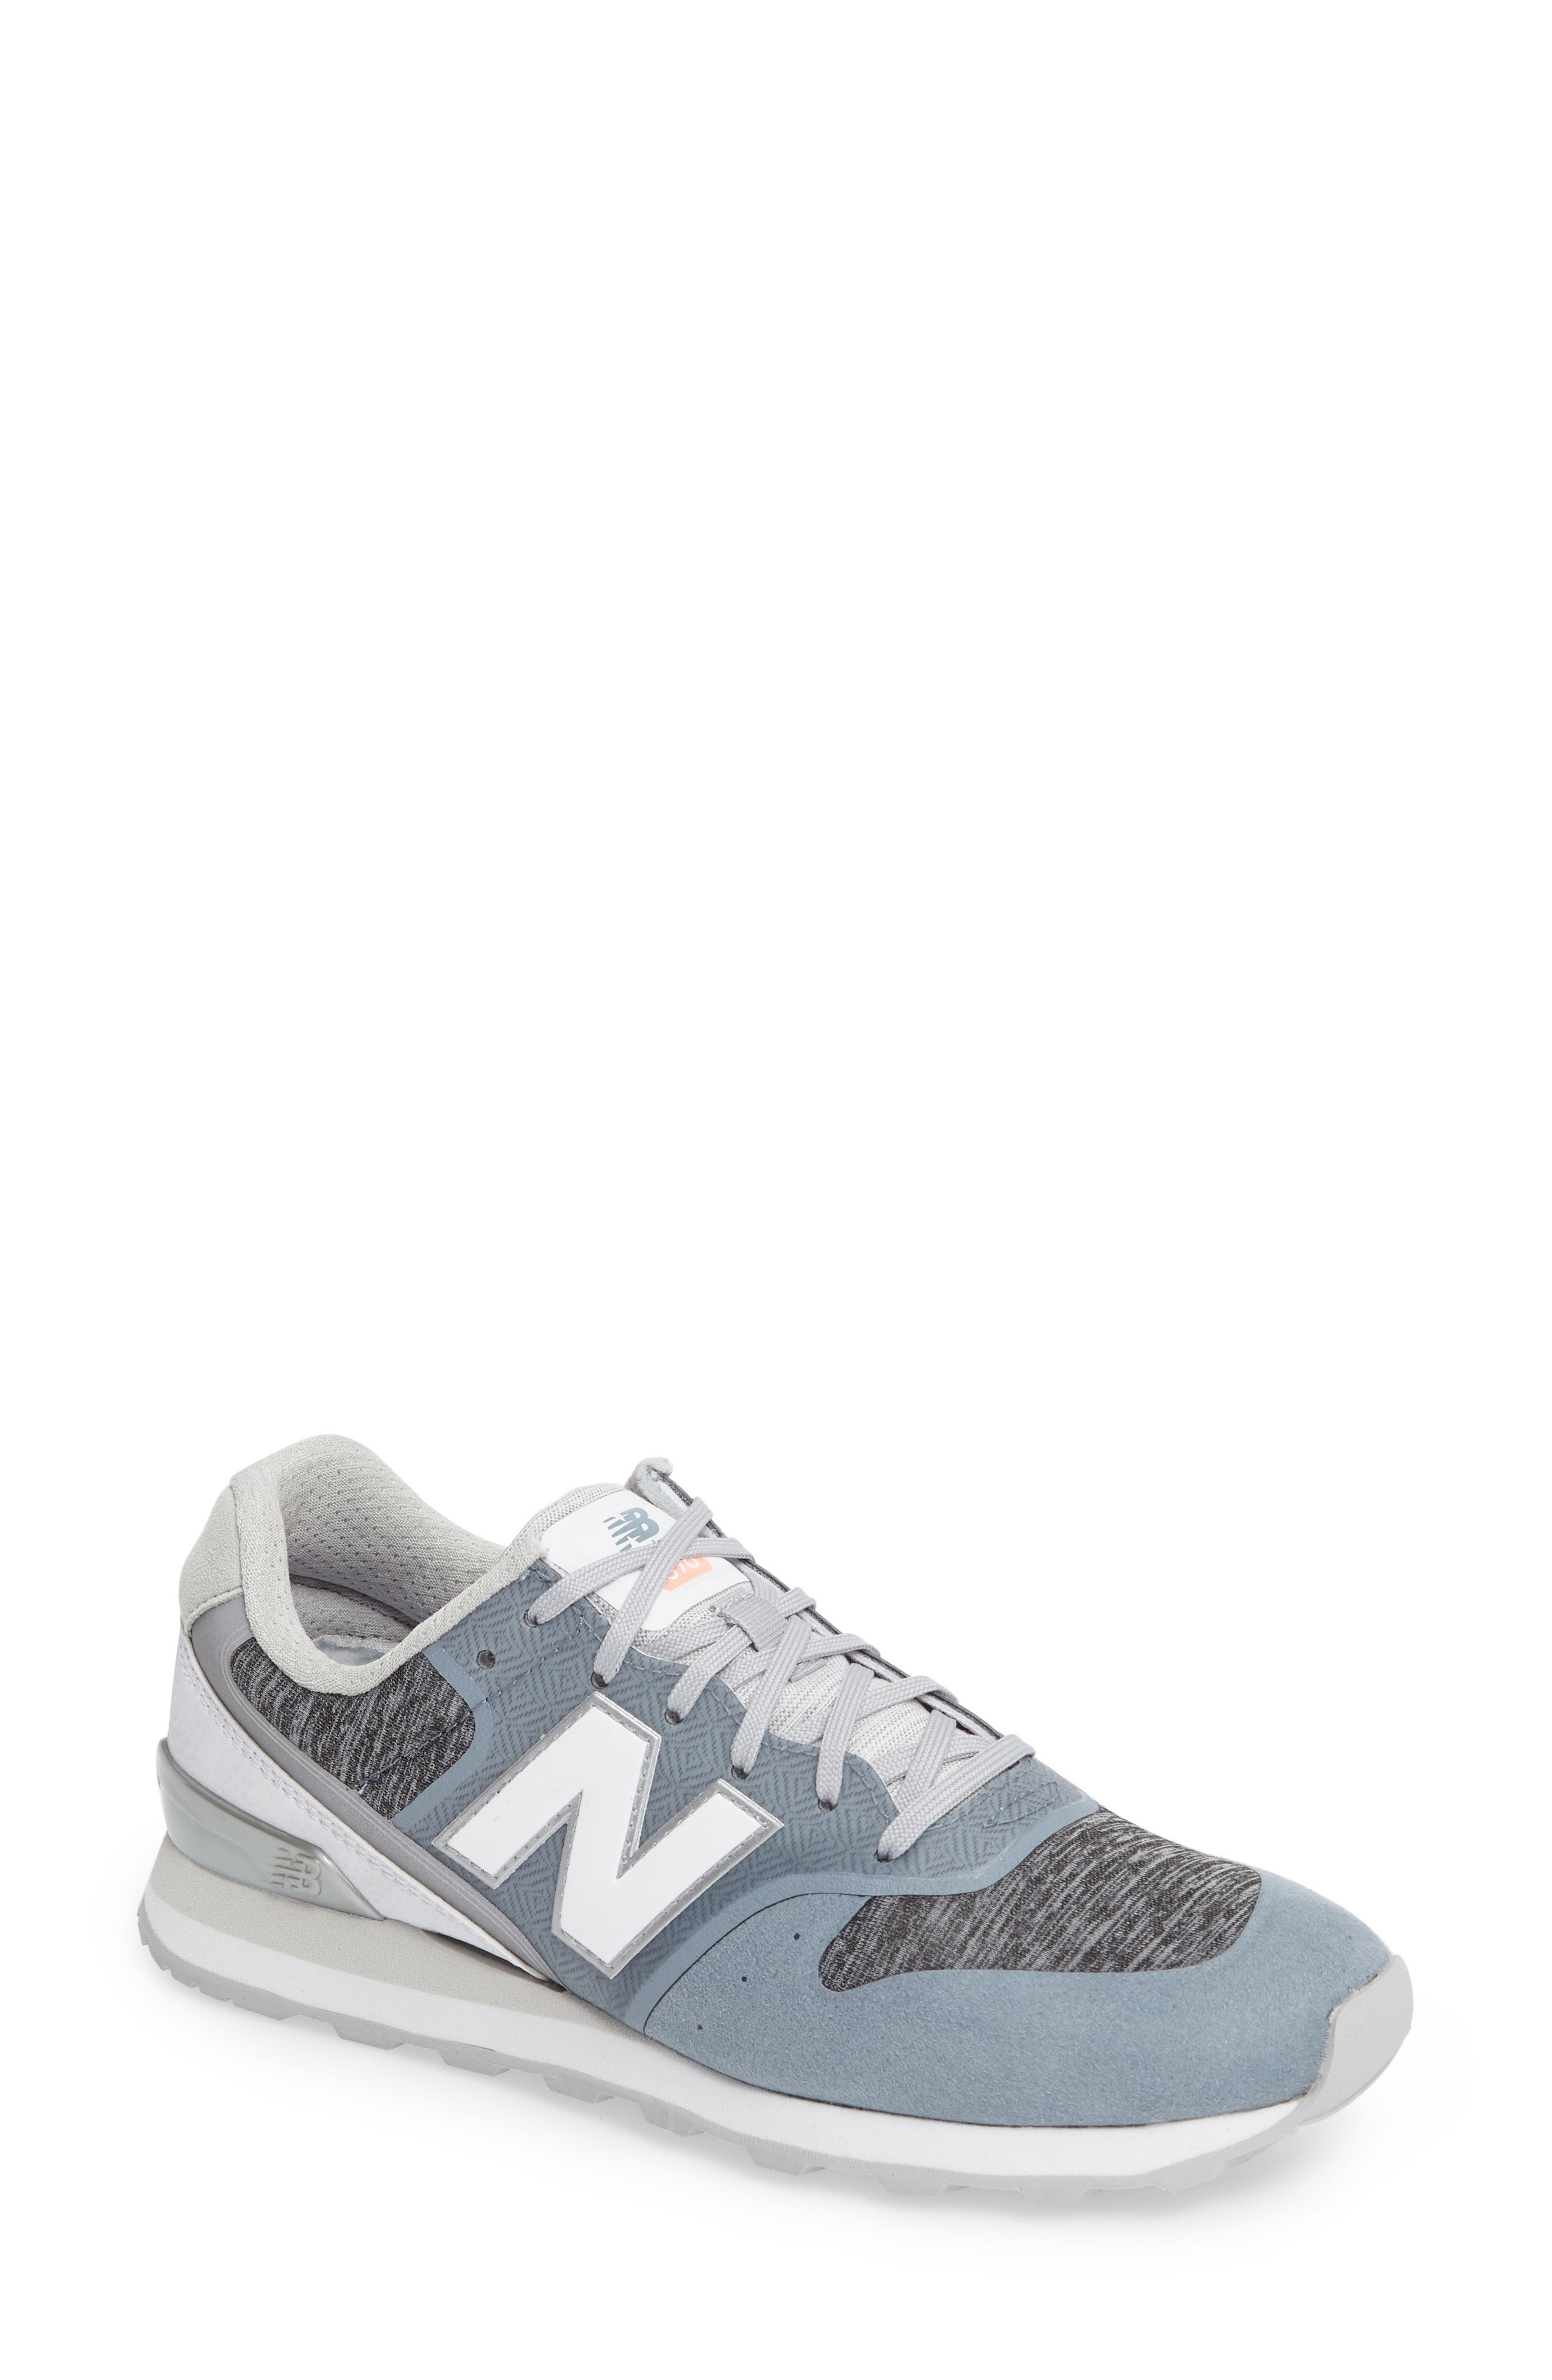 Main Image - New Balance 696 Re-Engineered Sneaker (Women)